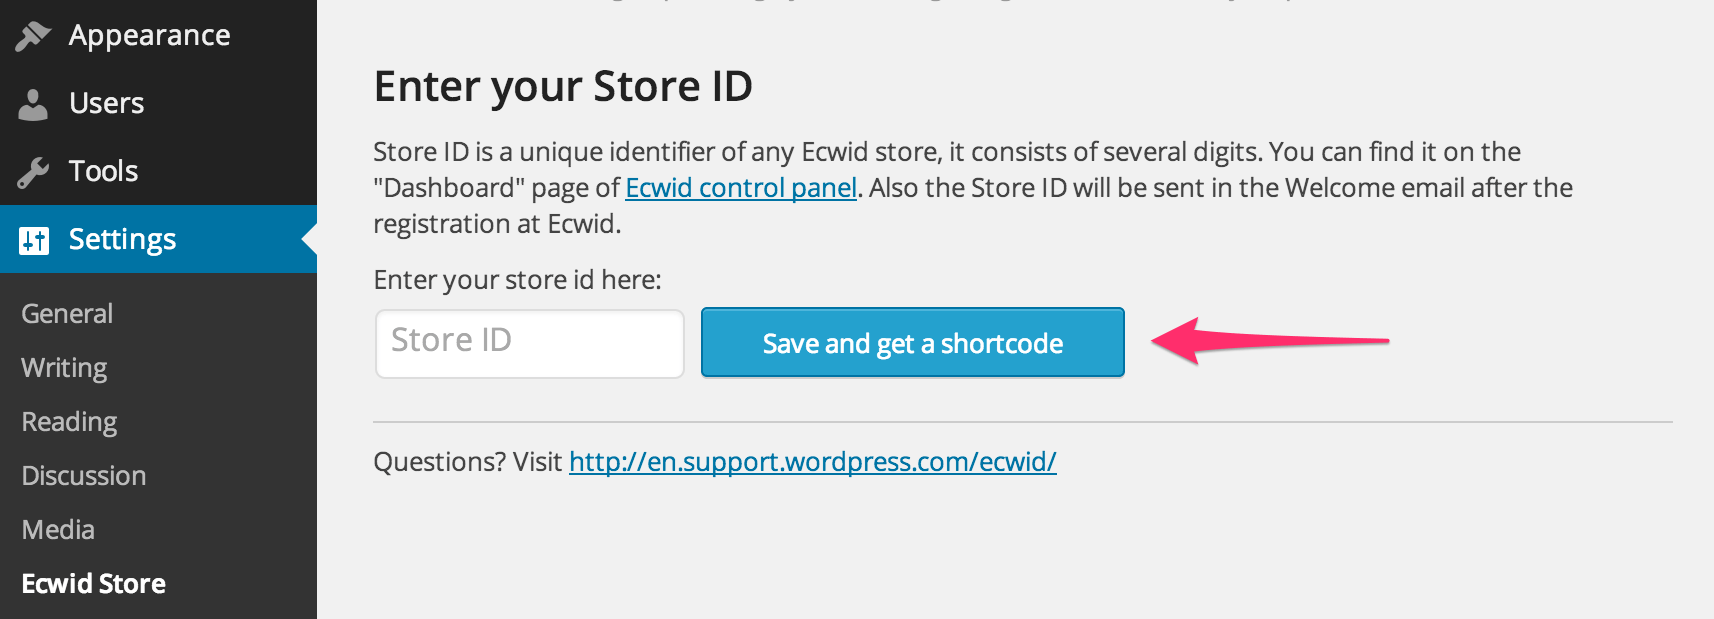 Enter the store ID you got from the Ecwid Dashboard to connect Ecwid to your site